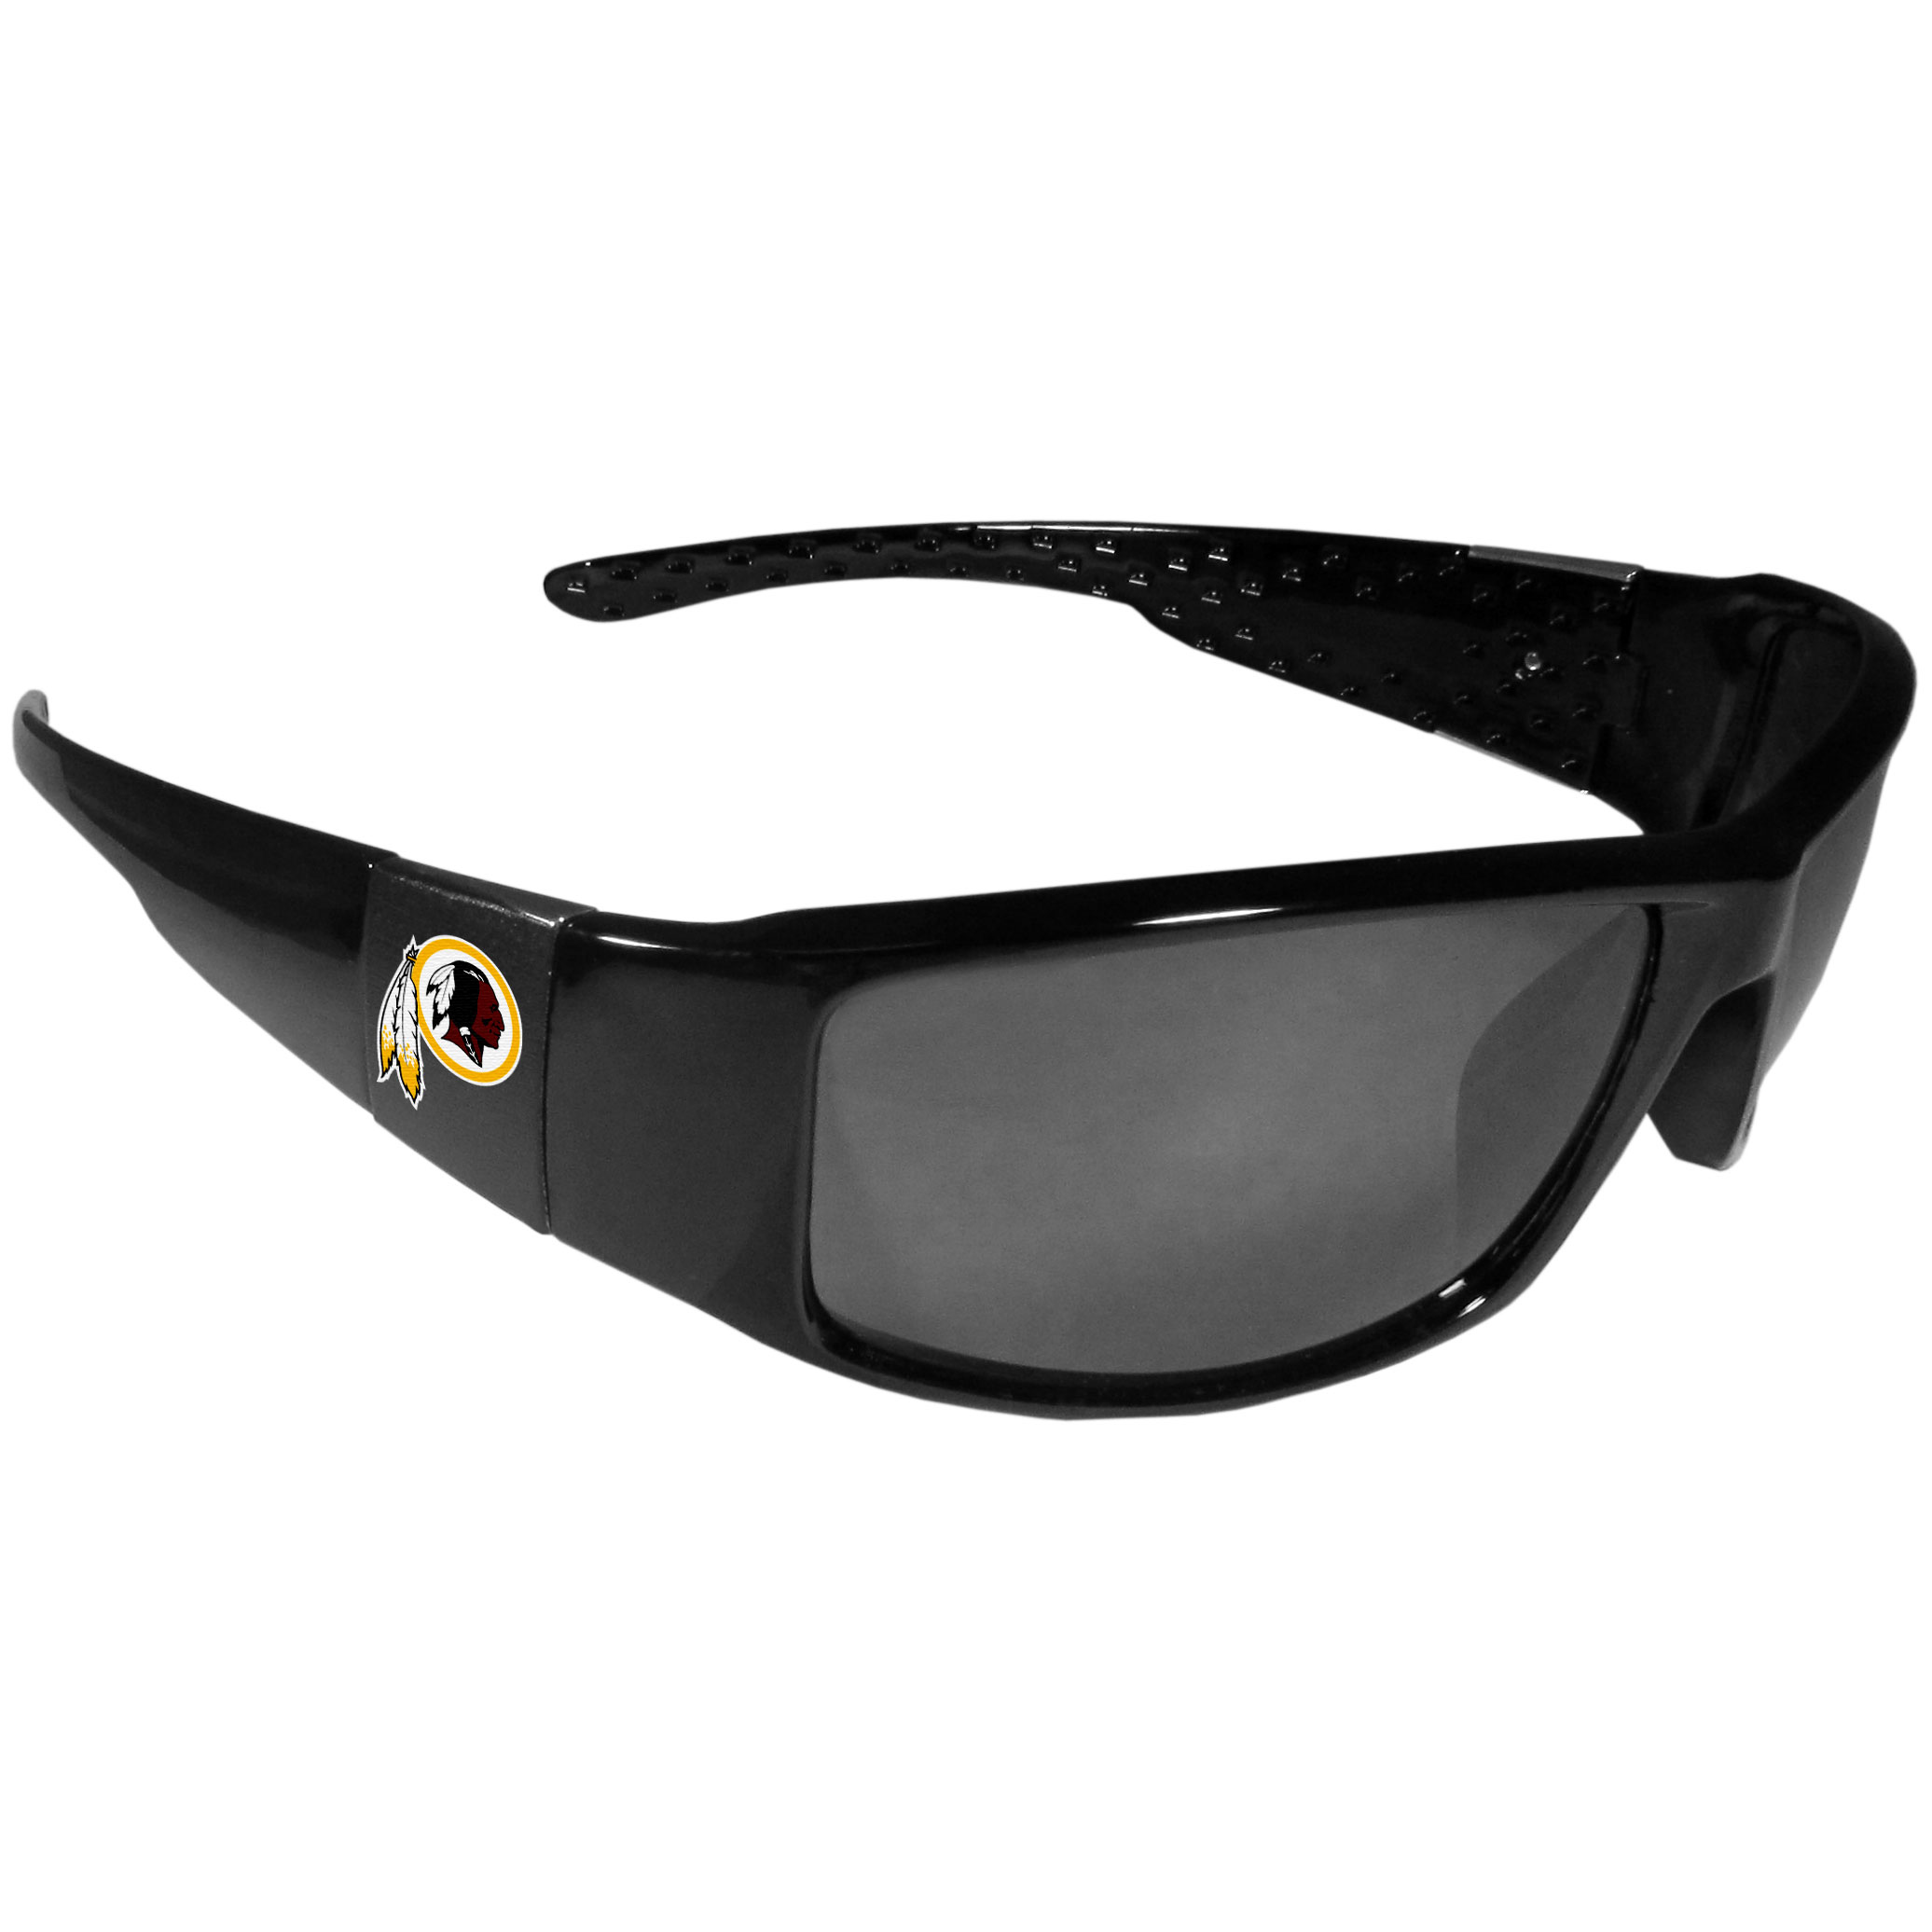 Washington Redskins Black Wrap Sunglasses - These designer inspired frames have a sleek look in all black with  Washington Redskins shields on each arm with a printed logo. The shades are perfect for any outdoor activity like; golfing, driving, hiking, fishing or cheering on the team at a tailgating event or at a home game day BBQ with a lens rating of 100% UVA/UVB for maximum UV protection. The high-quality frames are as durable as they are fashionable and with their classic look they are the perfect fan accessory that can be worn everyday for every occasion.